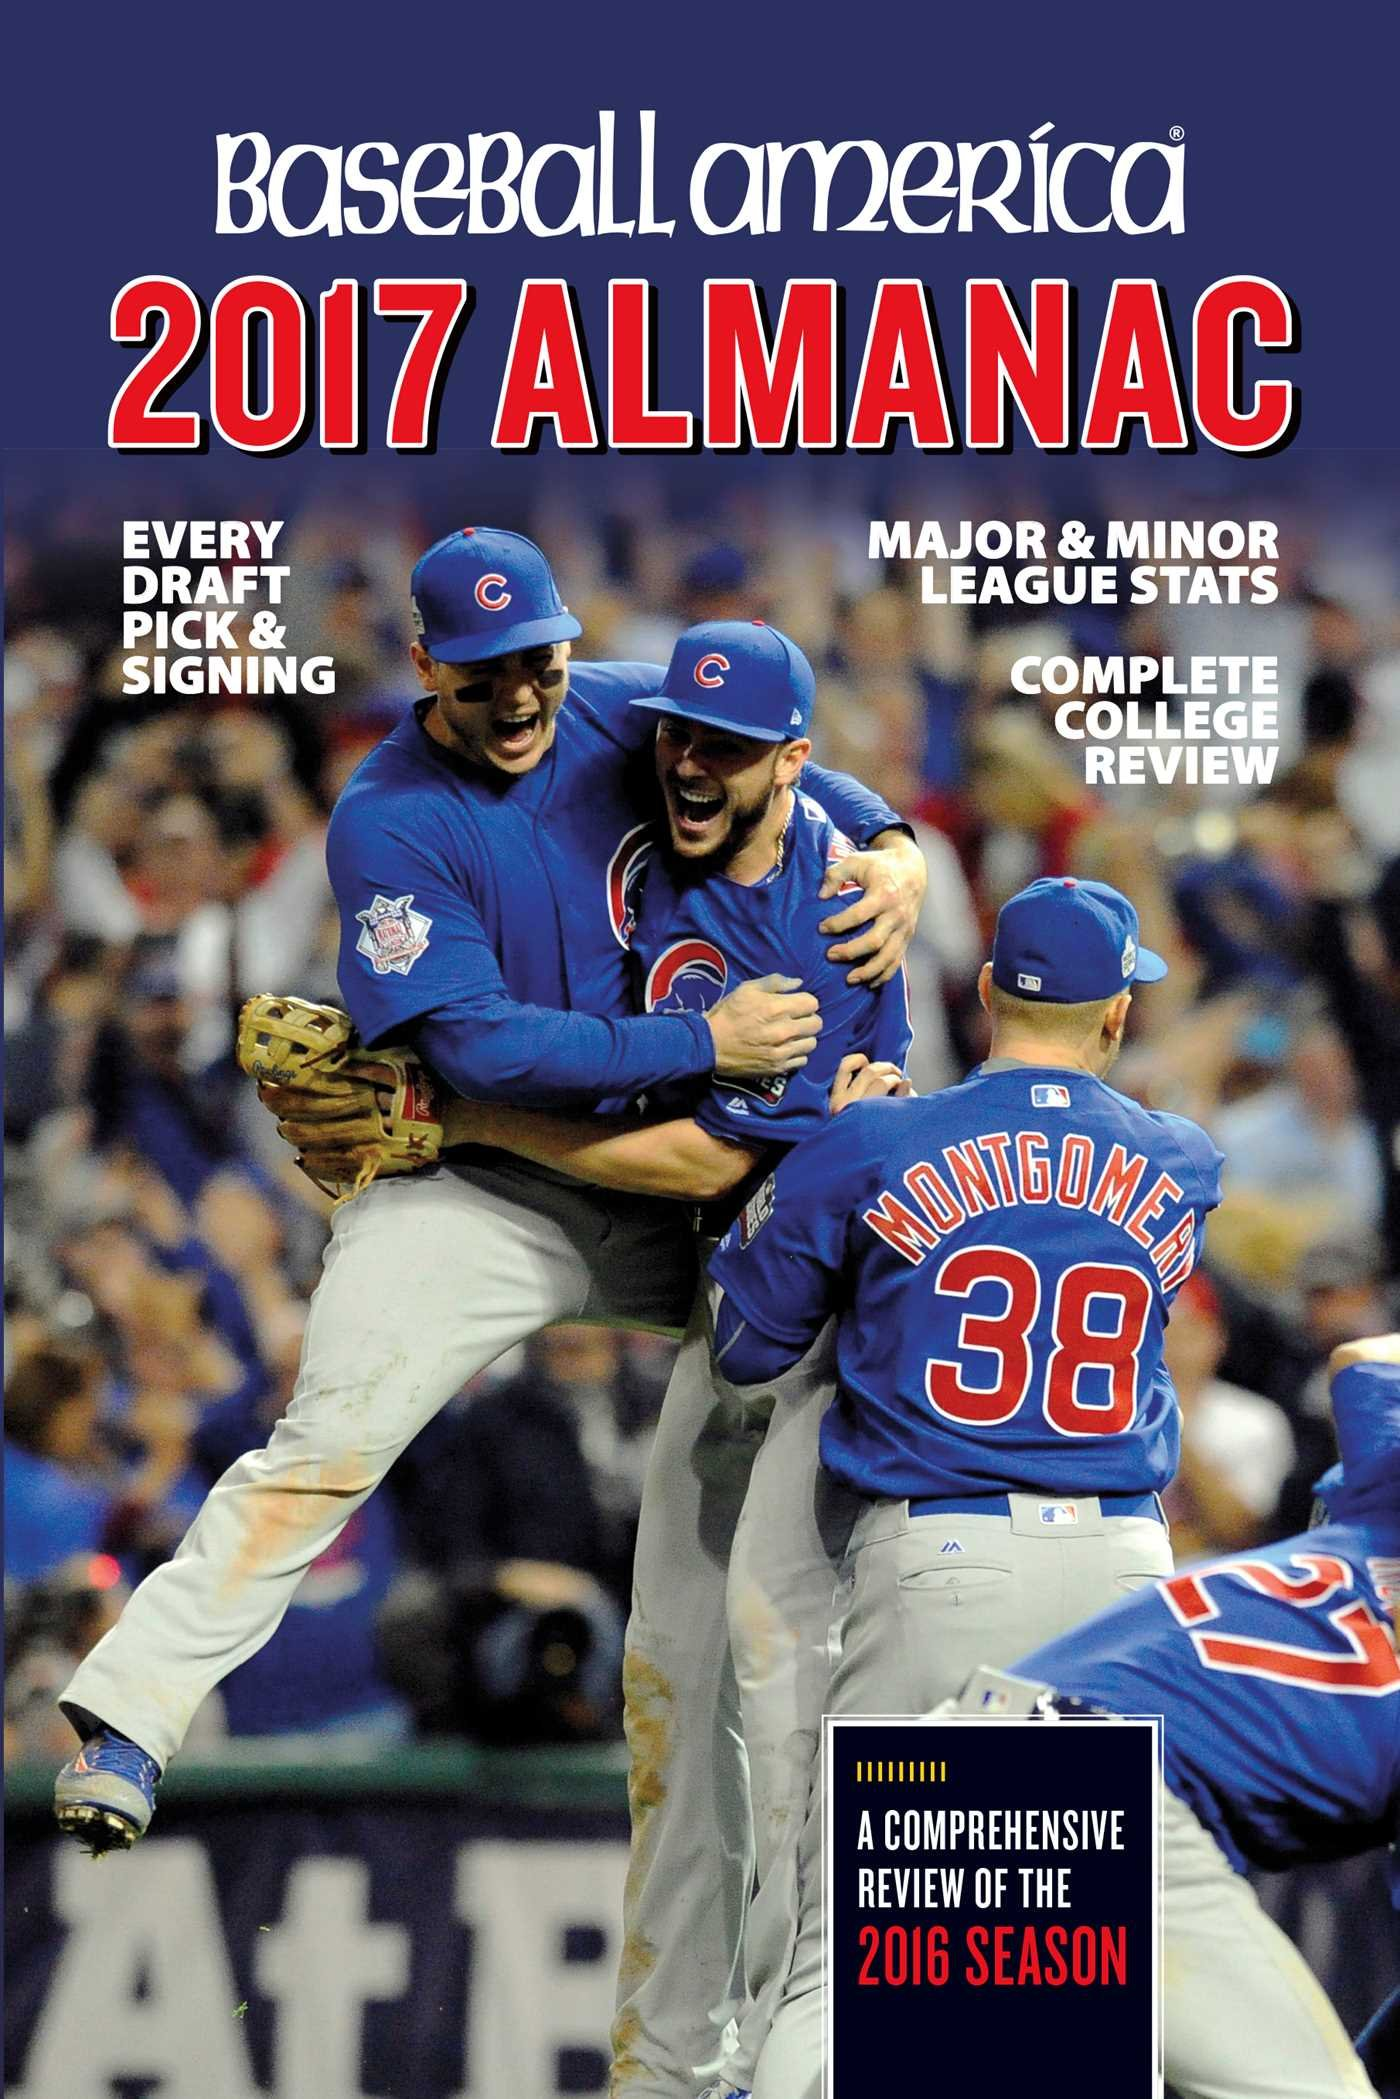 Baseball America 2017 Almanac Comprehensive product image